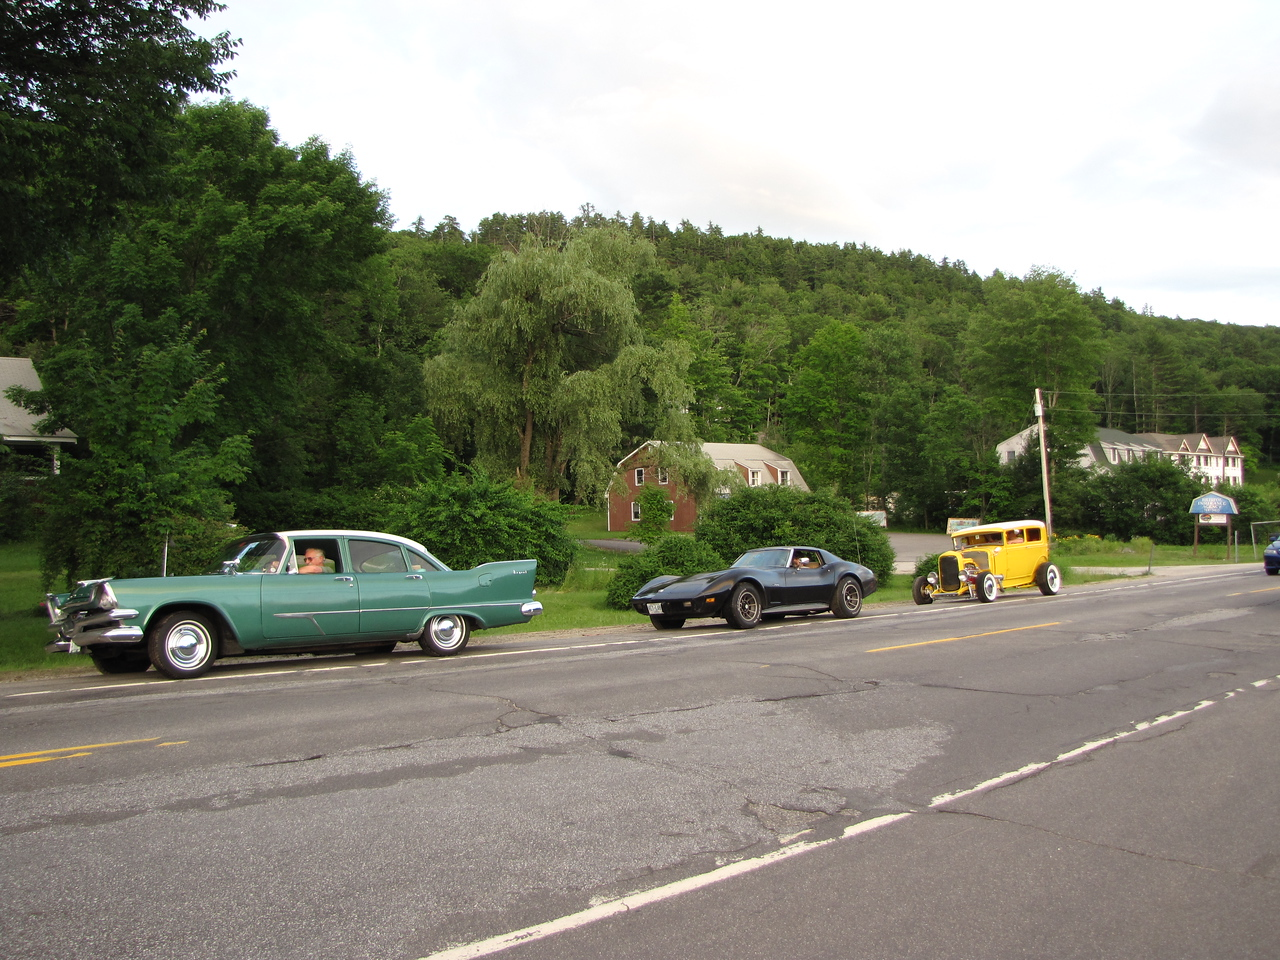 The last few lined up for their Friday night cruise around the lakes and back roads of Bridgewater, New Hampshire.